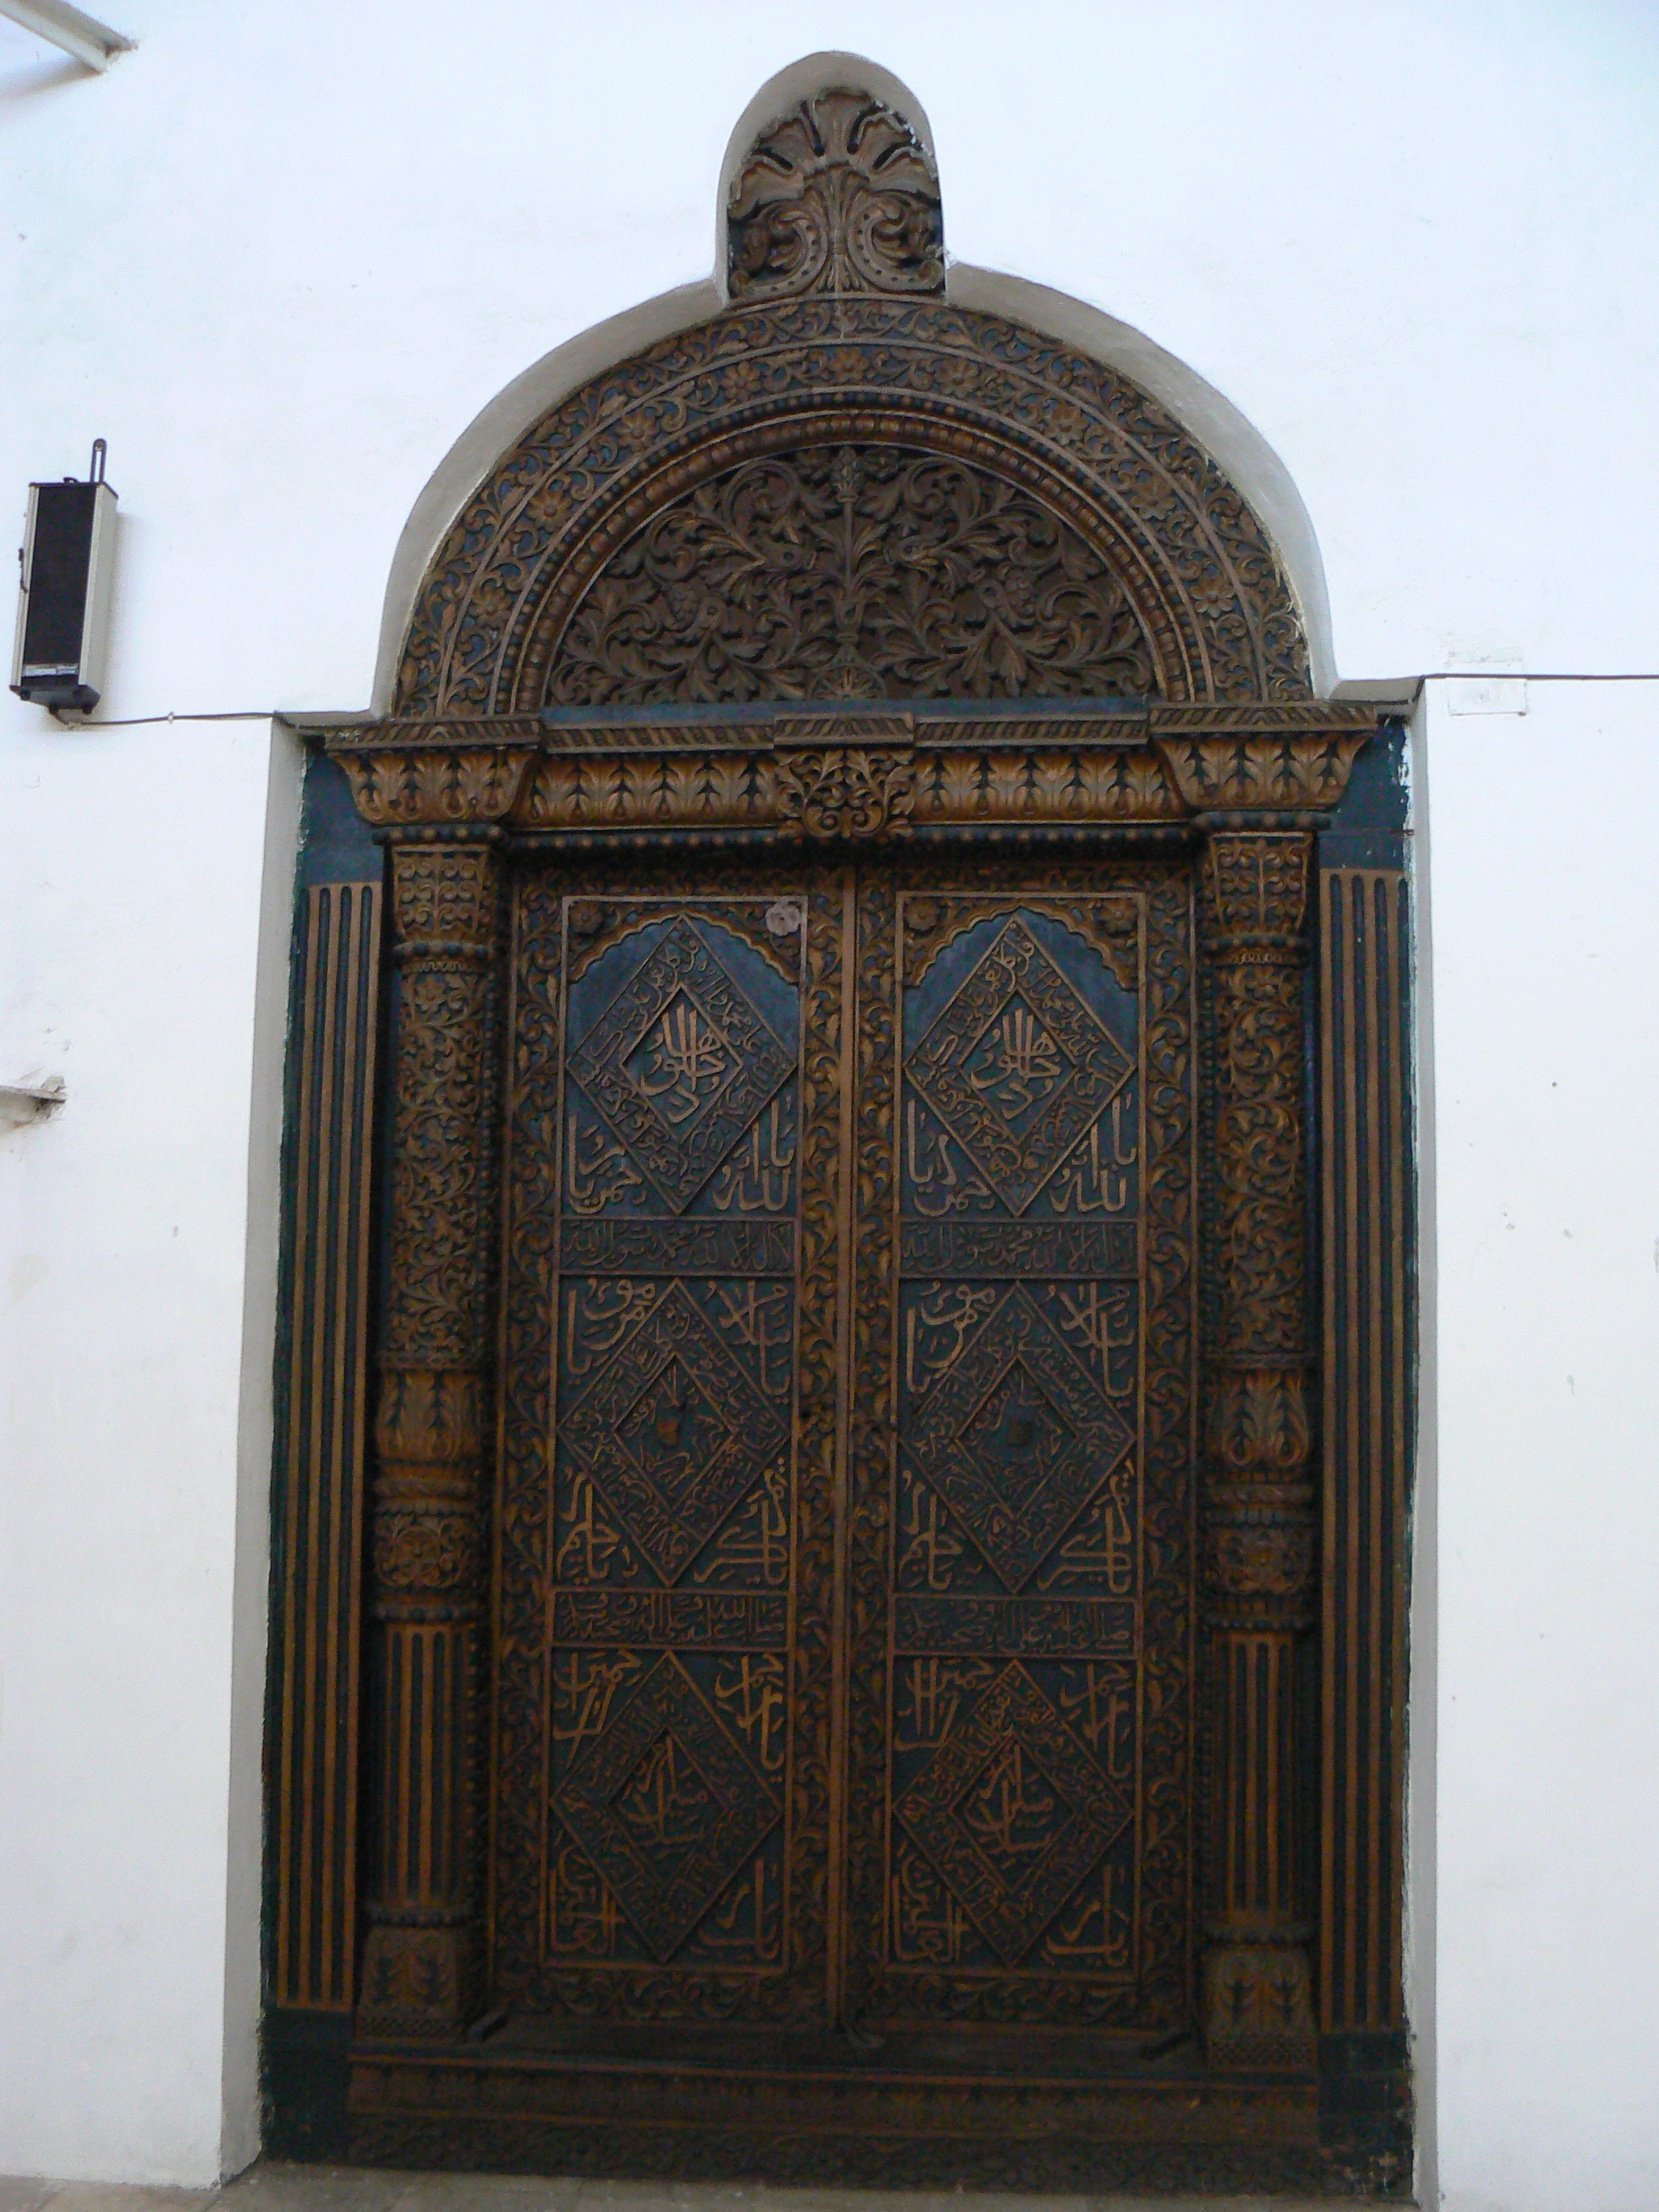 FileZanzibar door carved.jpg & File:Zanzibar door carved.jpg - Wikimedia Commons